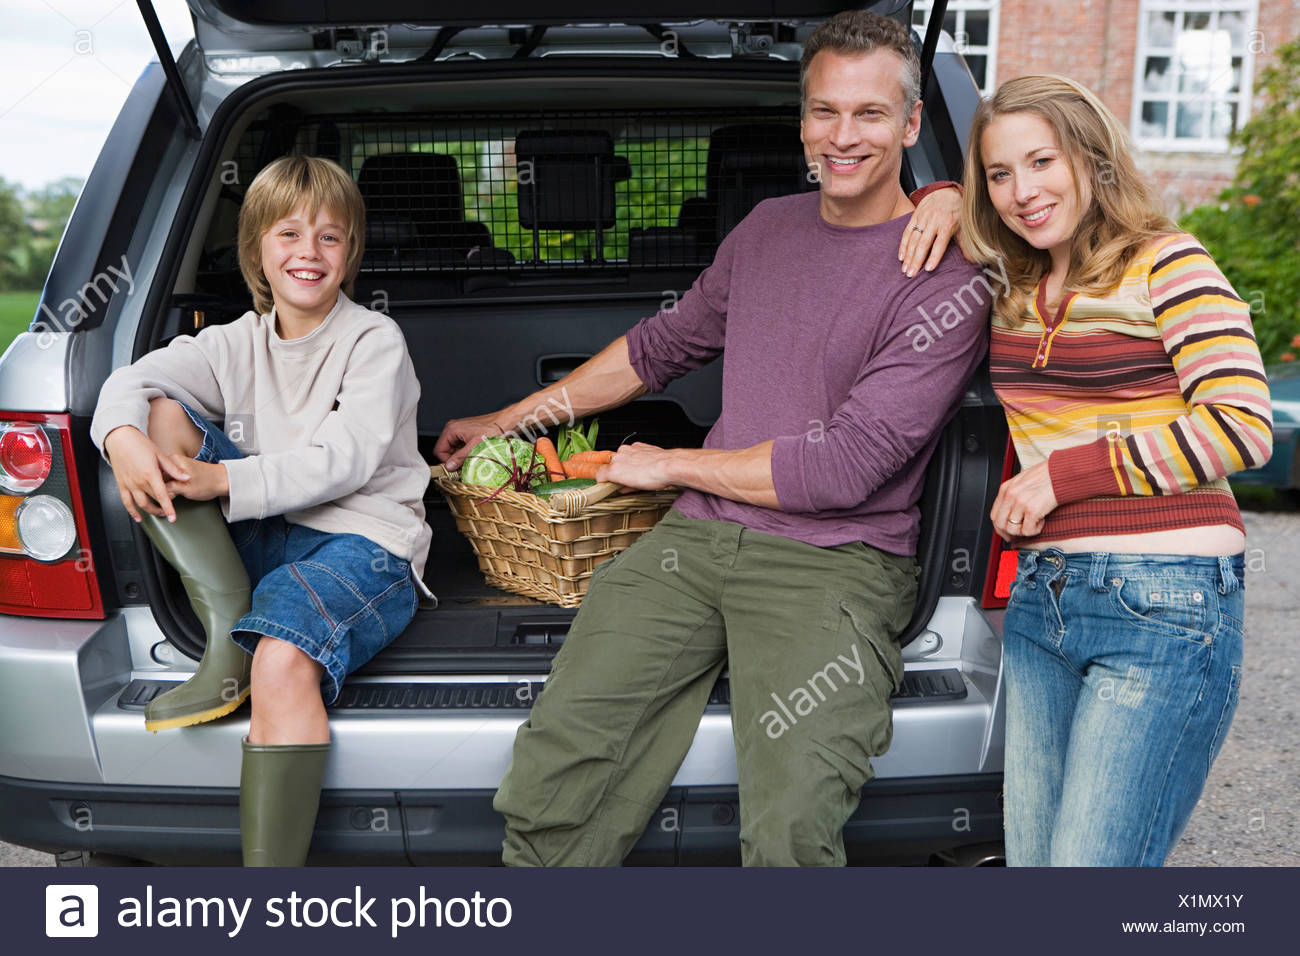 Two generation family posing beside car boot with basket of vegetables smiling portrait - Stock Image